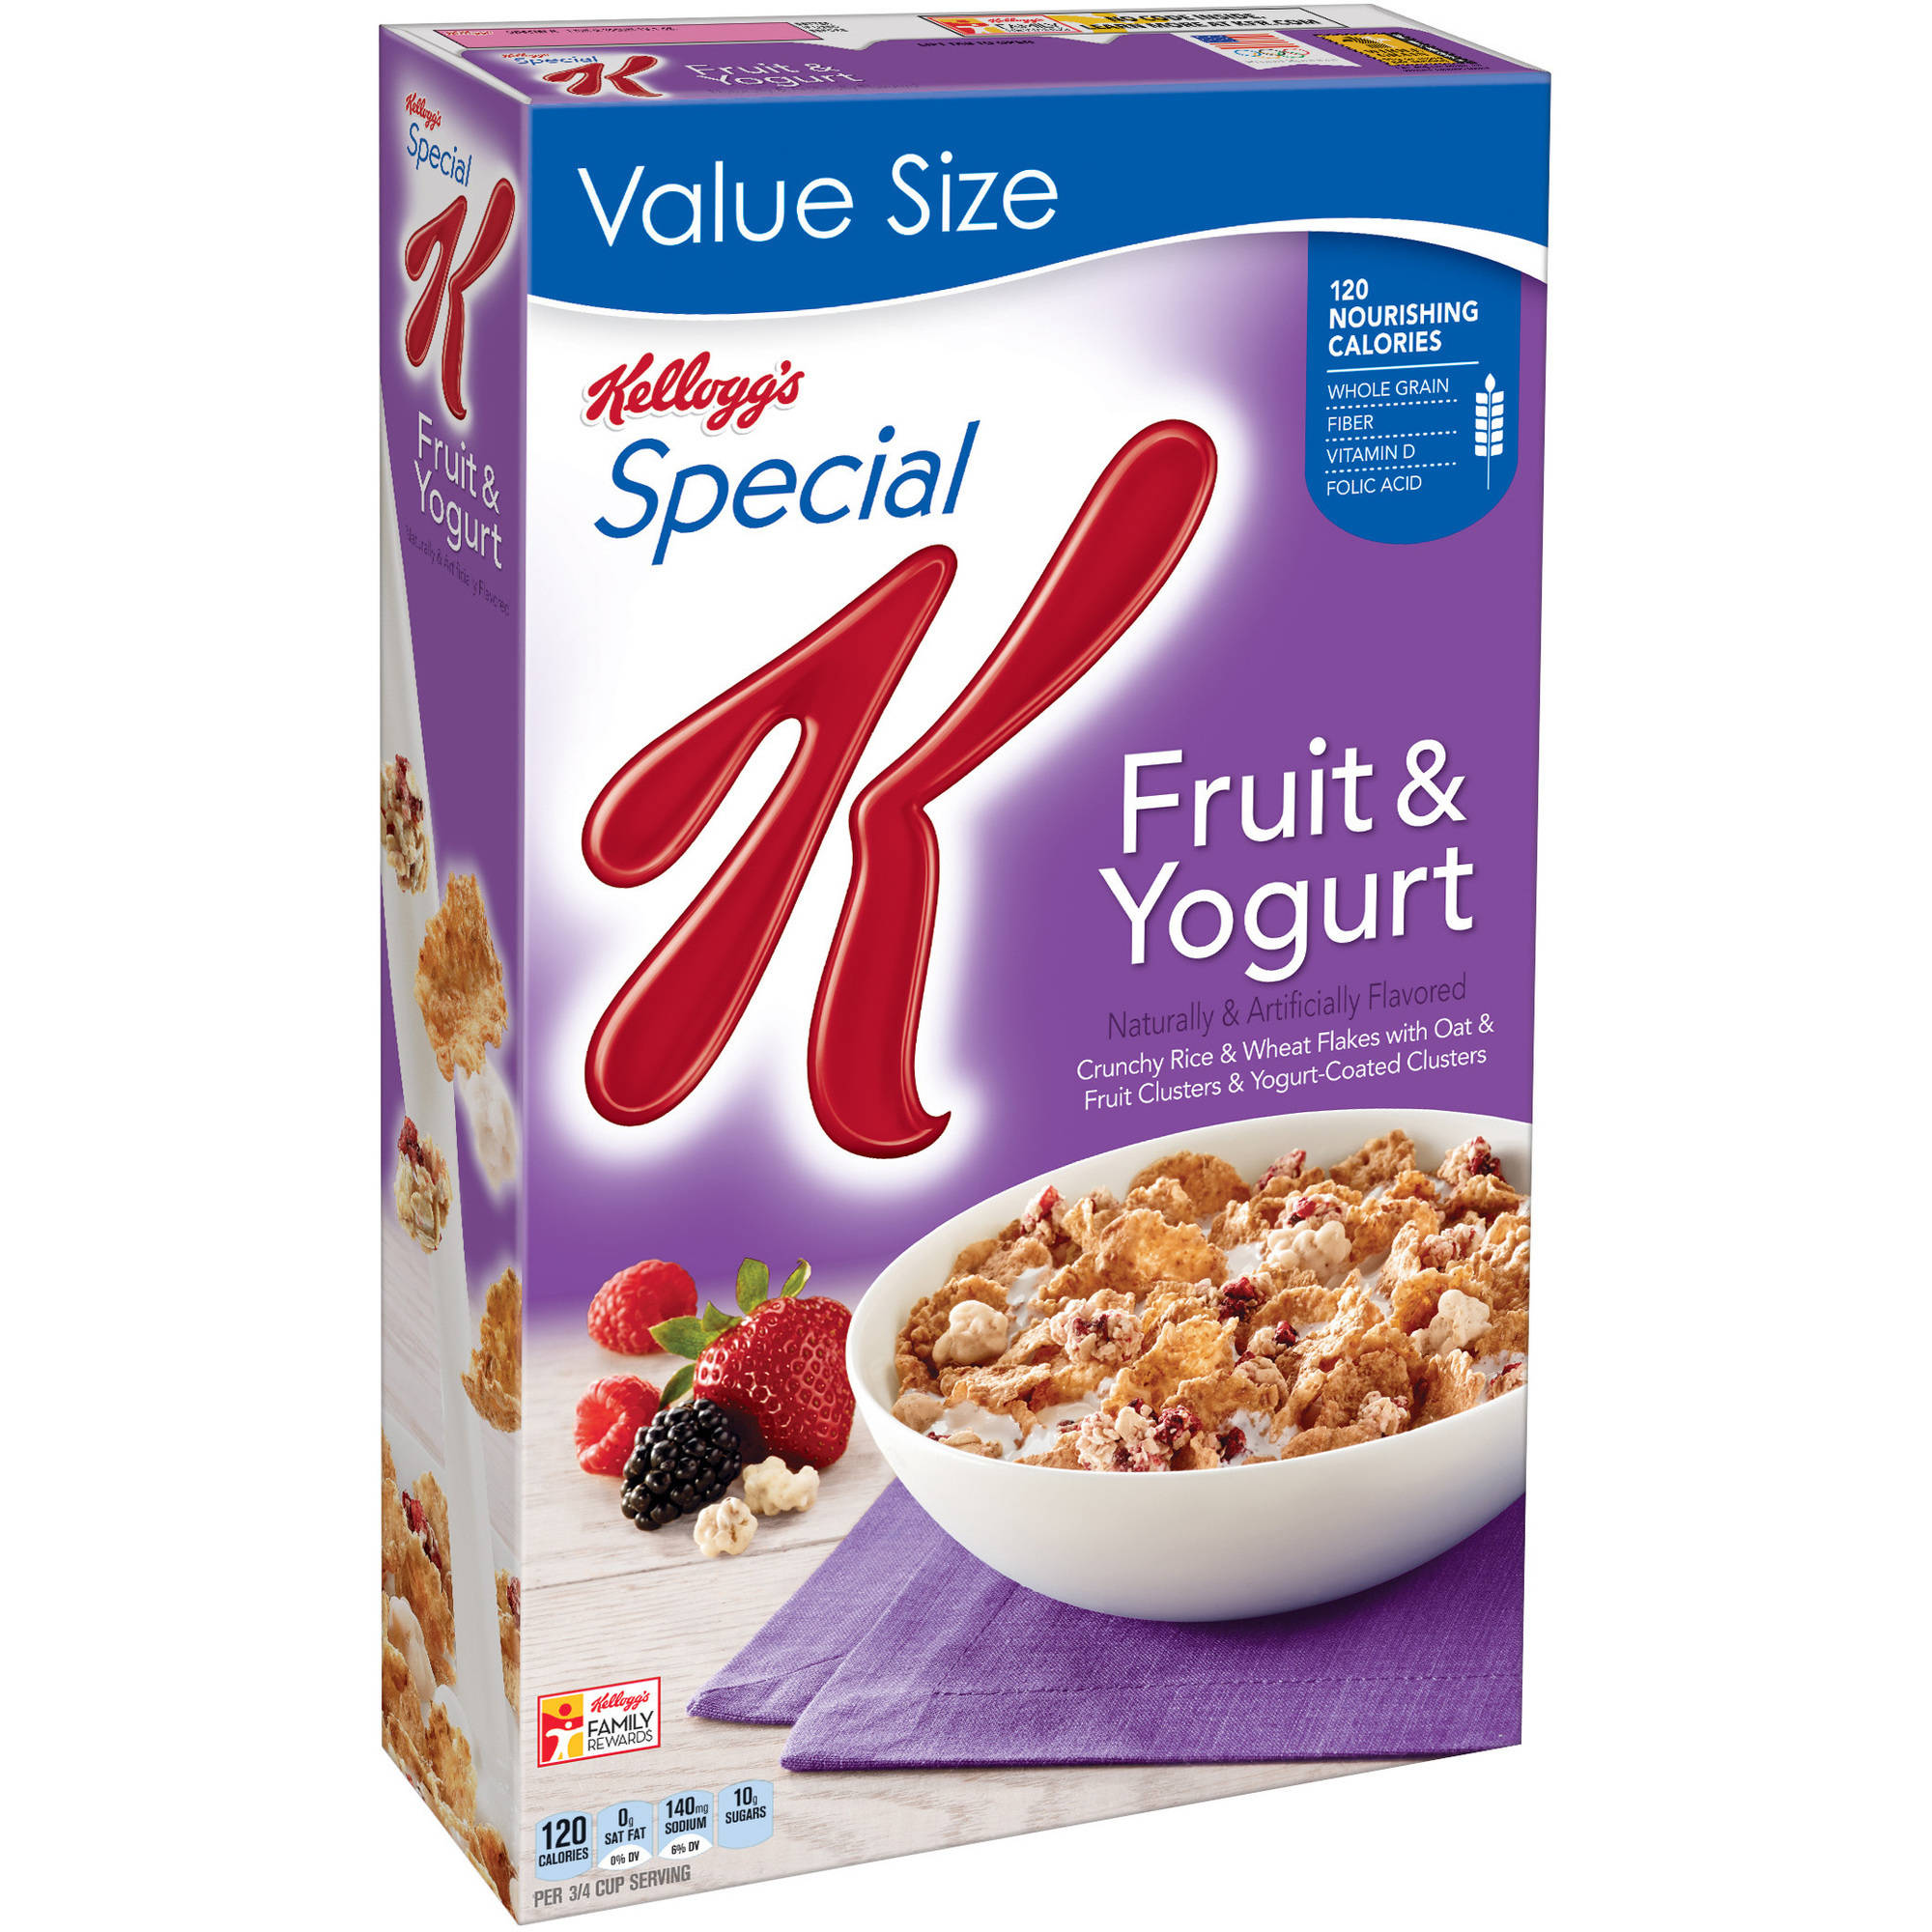 Kellogg's Special K Fruit & Yogurt Cereal, 19.1 oz